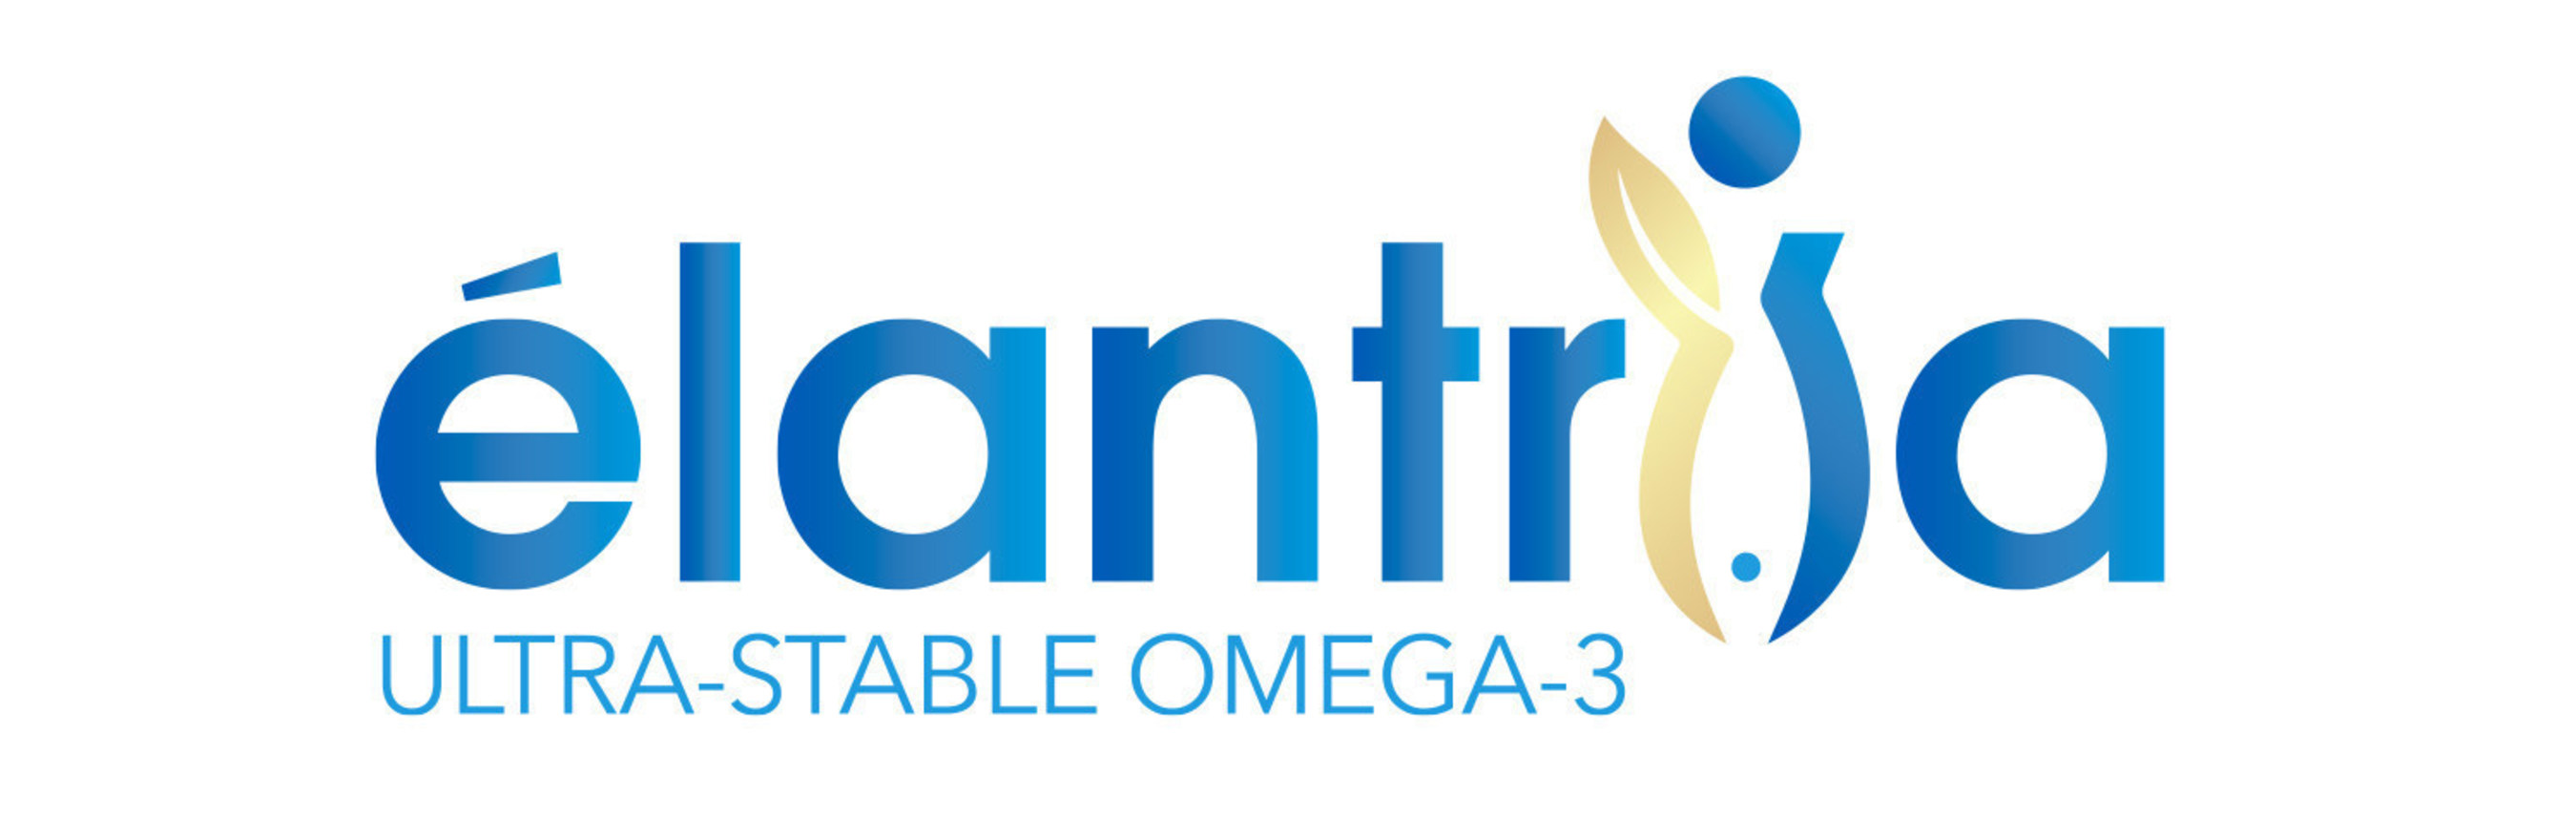 elantria Ultra-Stable Omega-3 oils feature food-grade raw materials, cutting-edge purification, deodorization and concentration technologies and a proprietary QualitySilver(R) stabilization process that sets new standards for stability and shelf life.